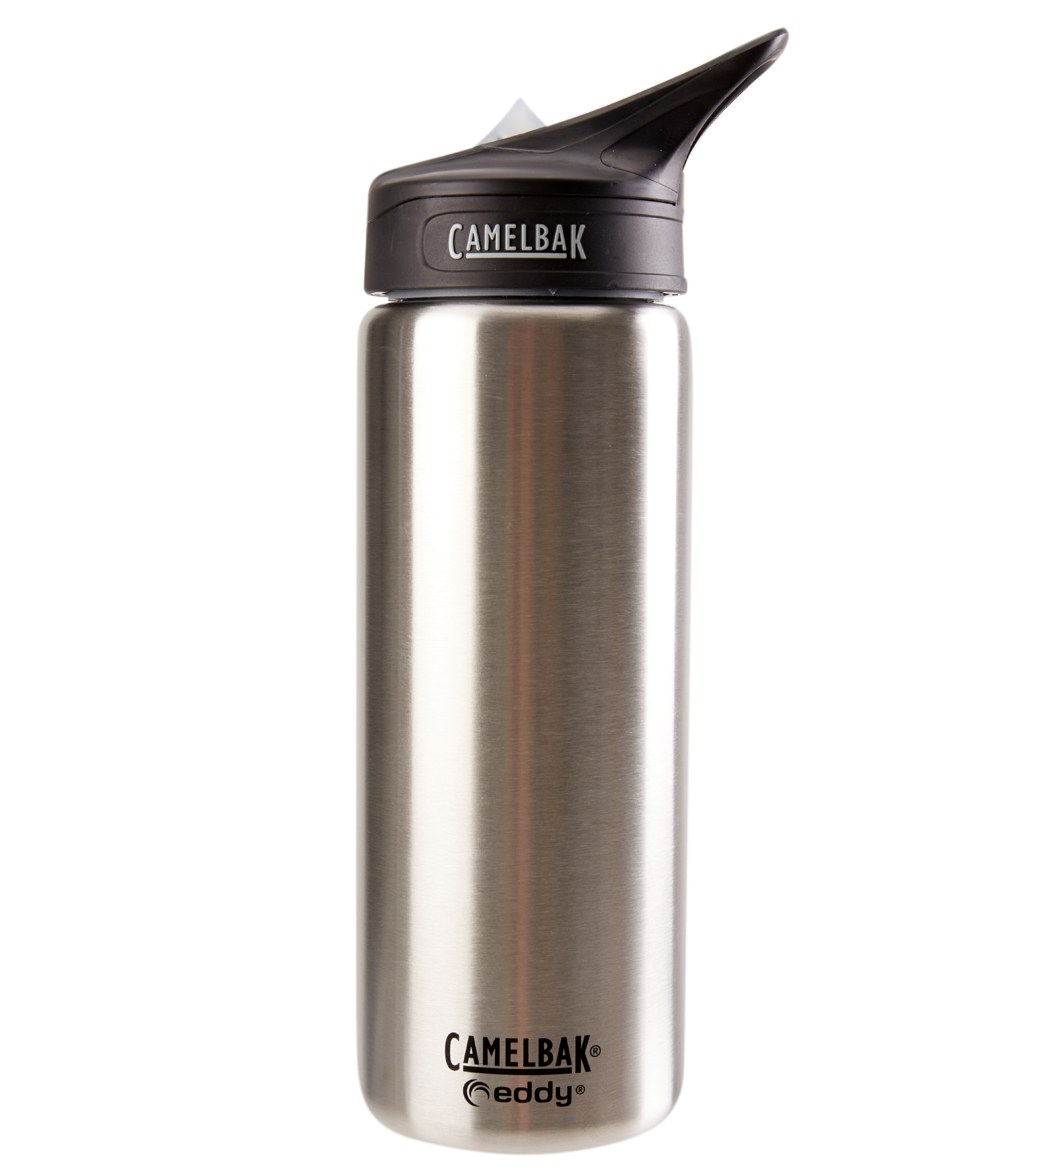 0d05c123c3 ... CamelBak eddy 20 oz Vacuum Insulated Stainless Water Bottle. Share